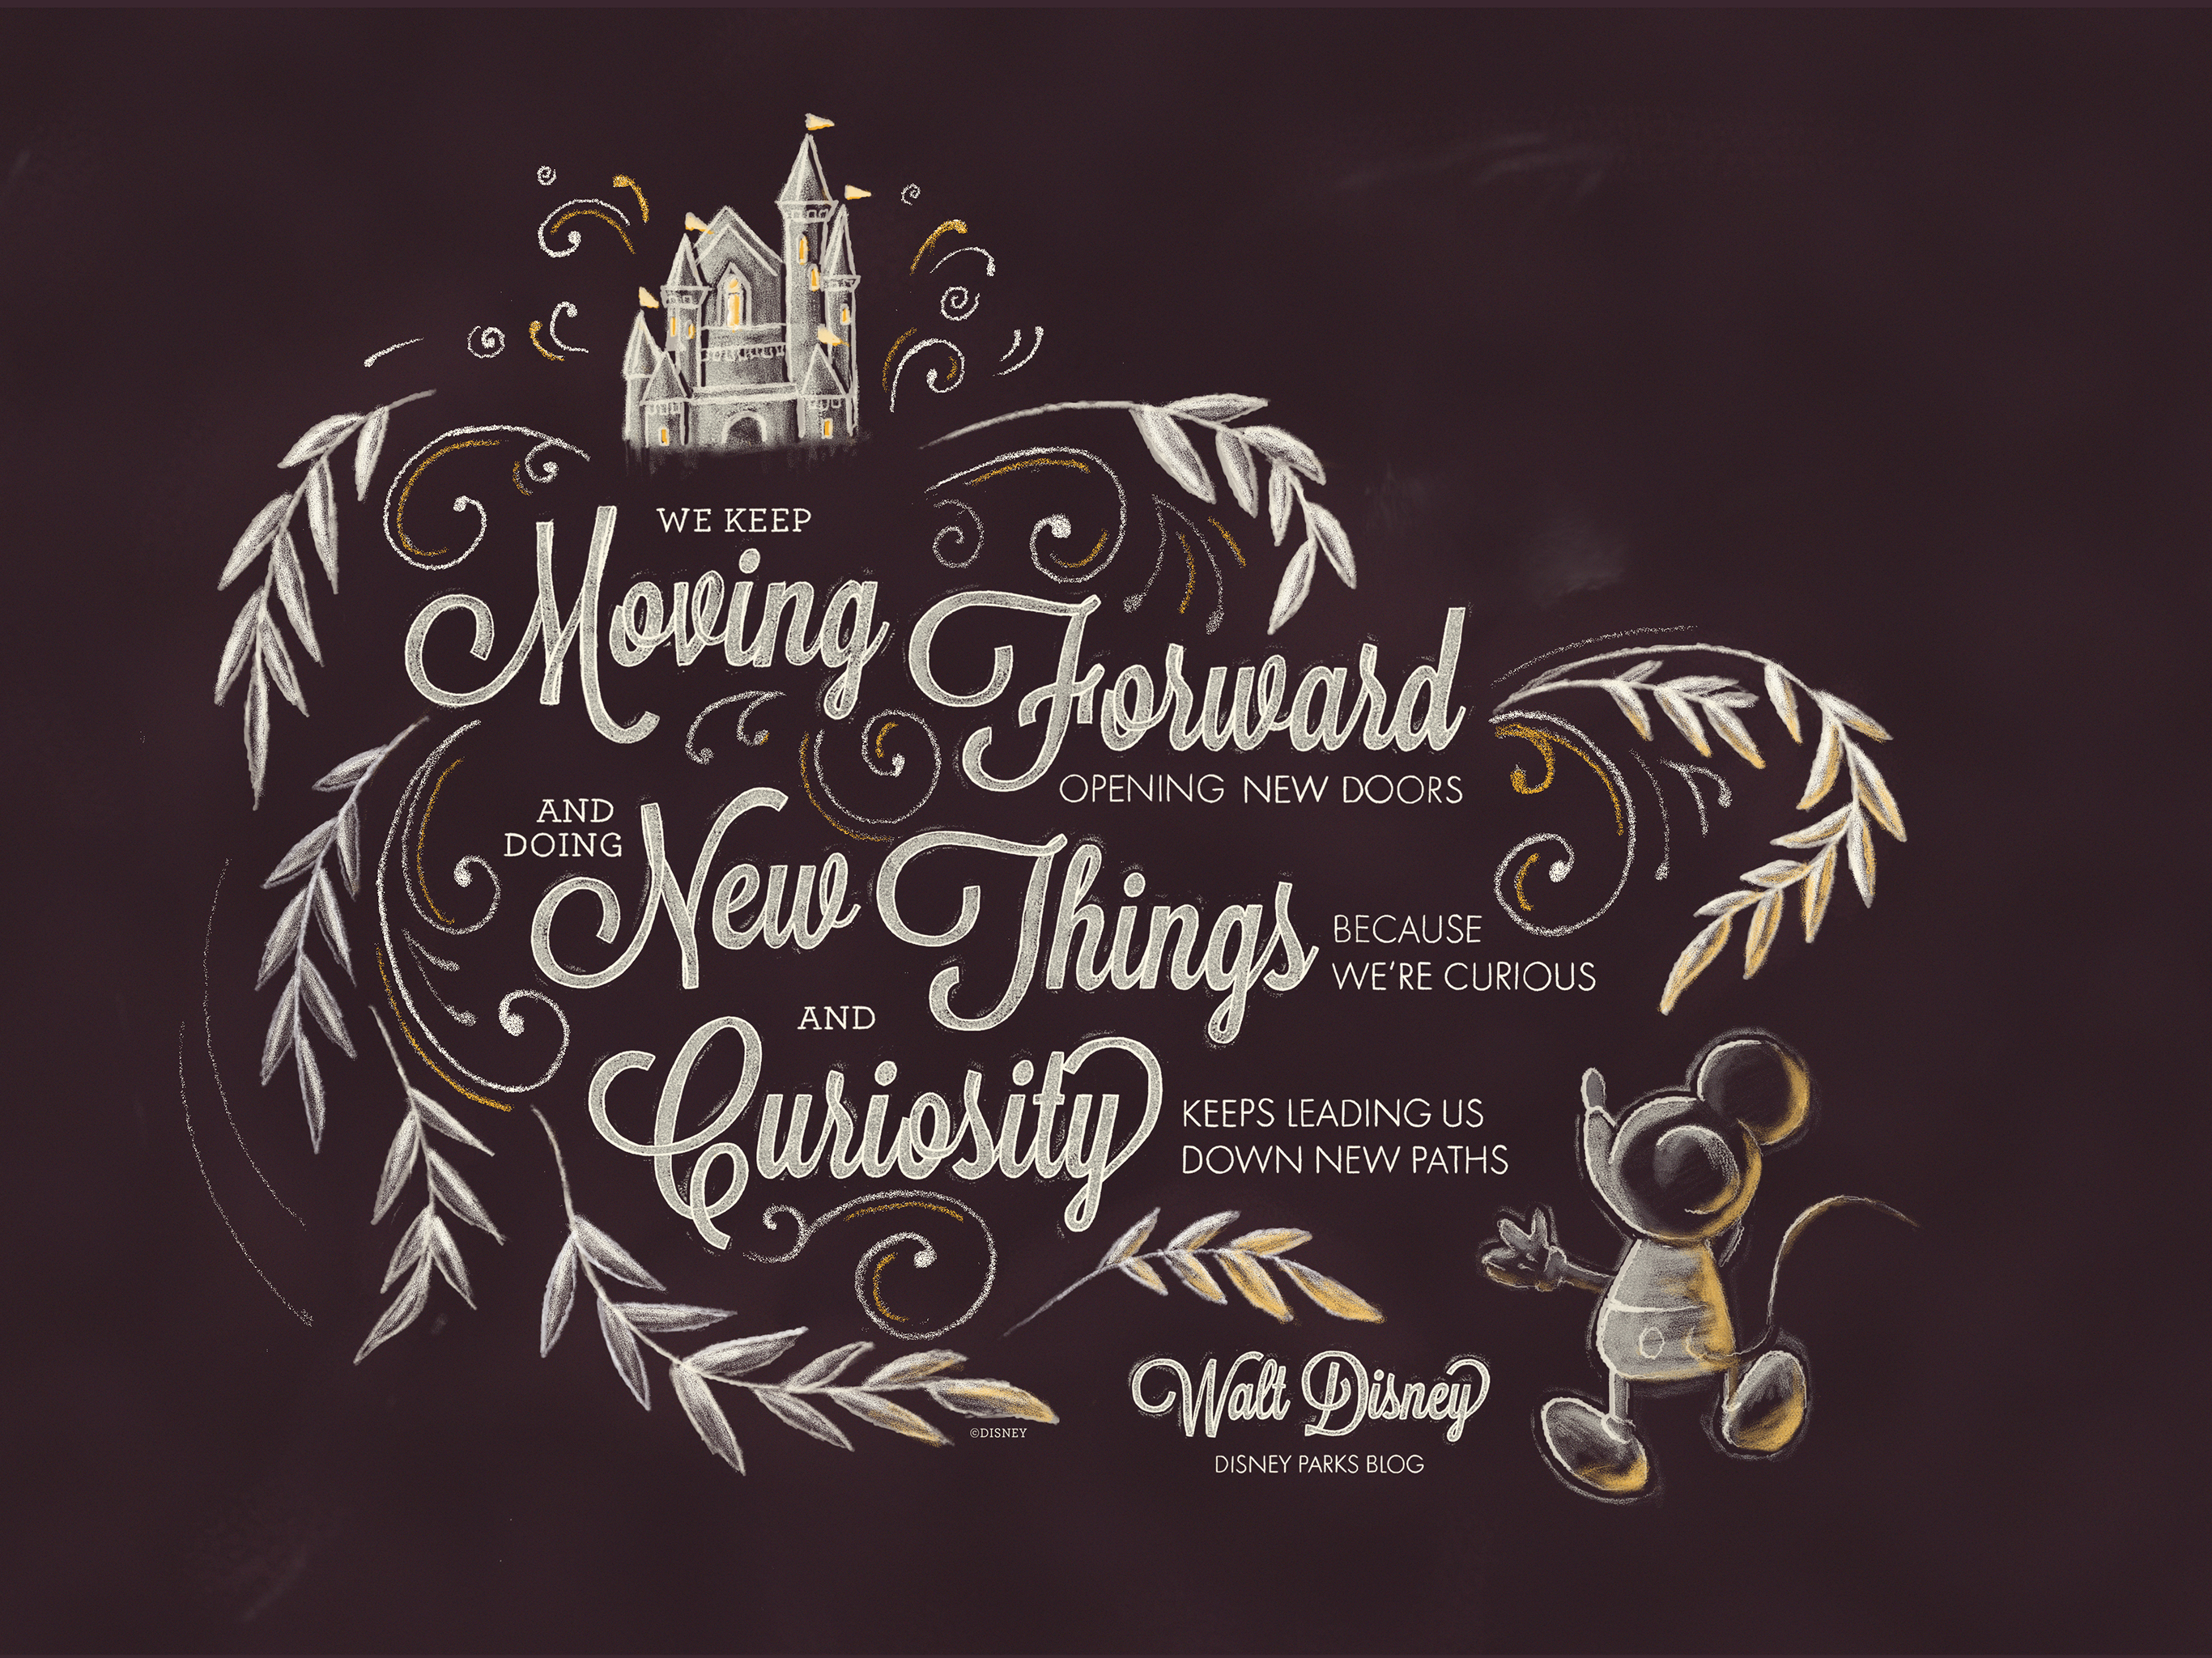 Exclusive: Walt Disney Desktop/Mobile Wallpaper | Disney Parks Blog